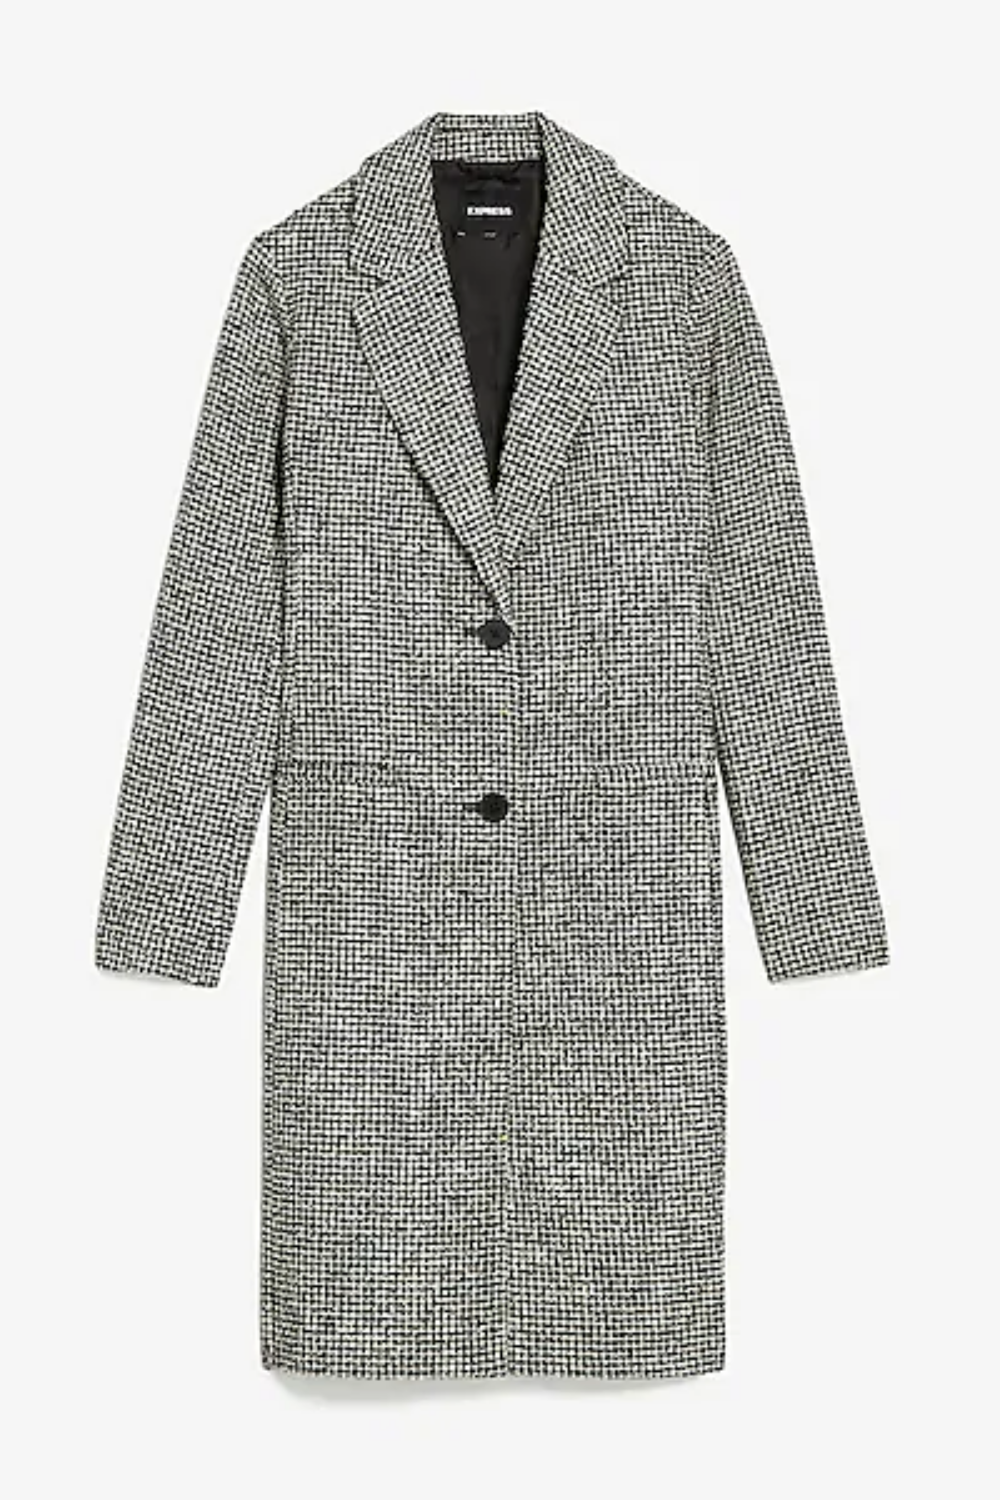 Express - Houndstooth Two Button Car Coat